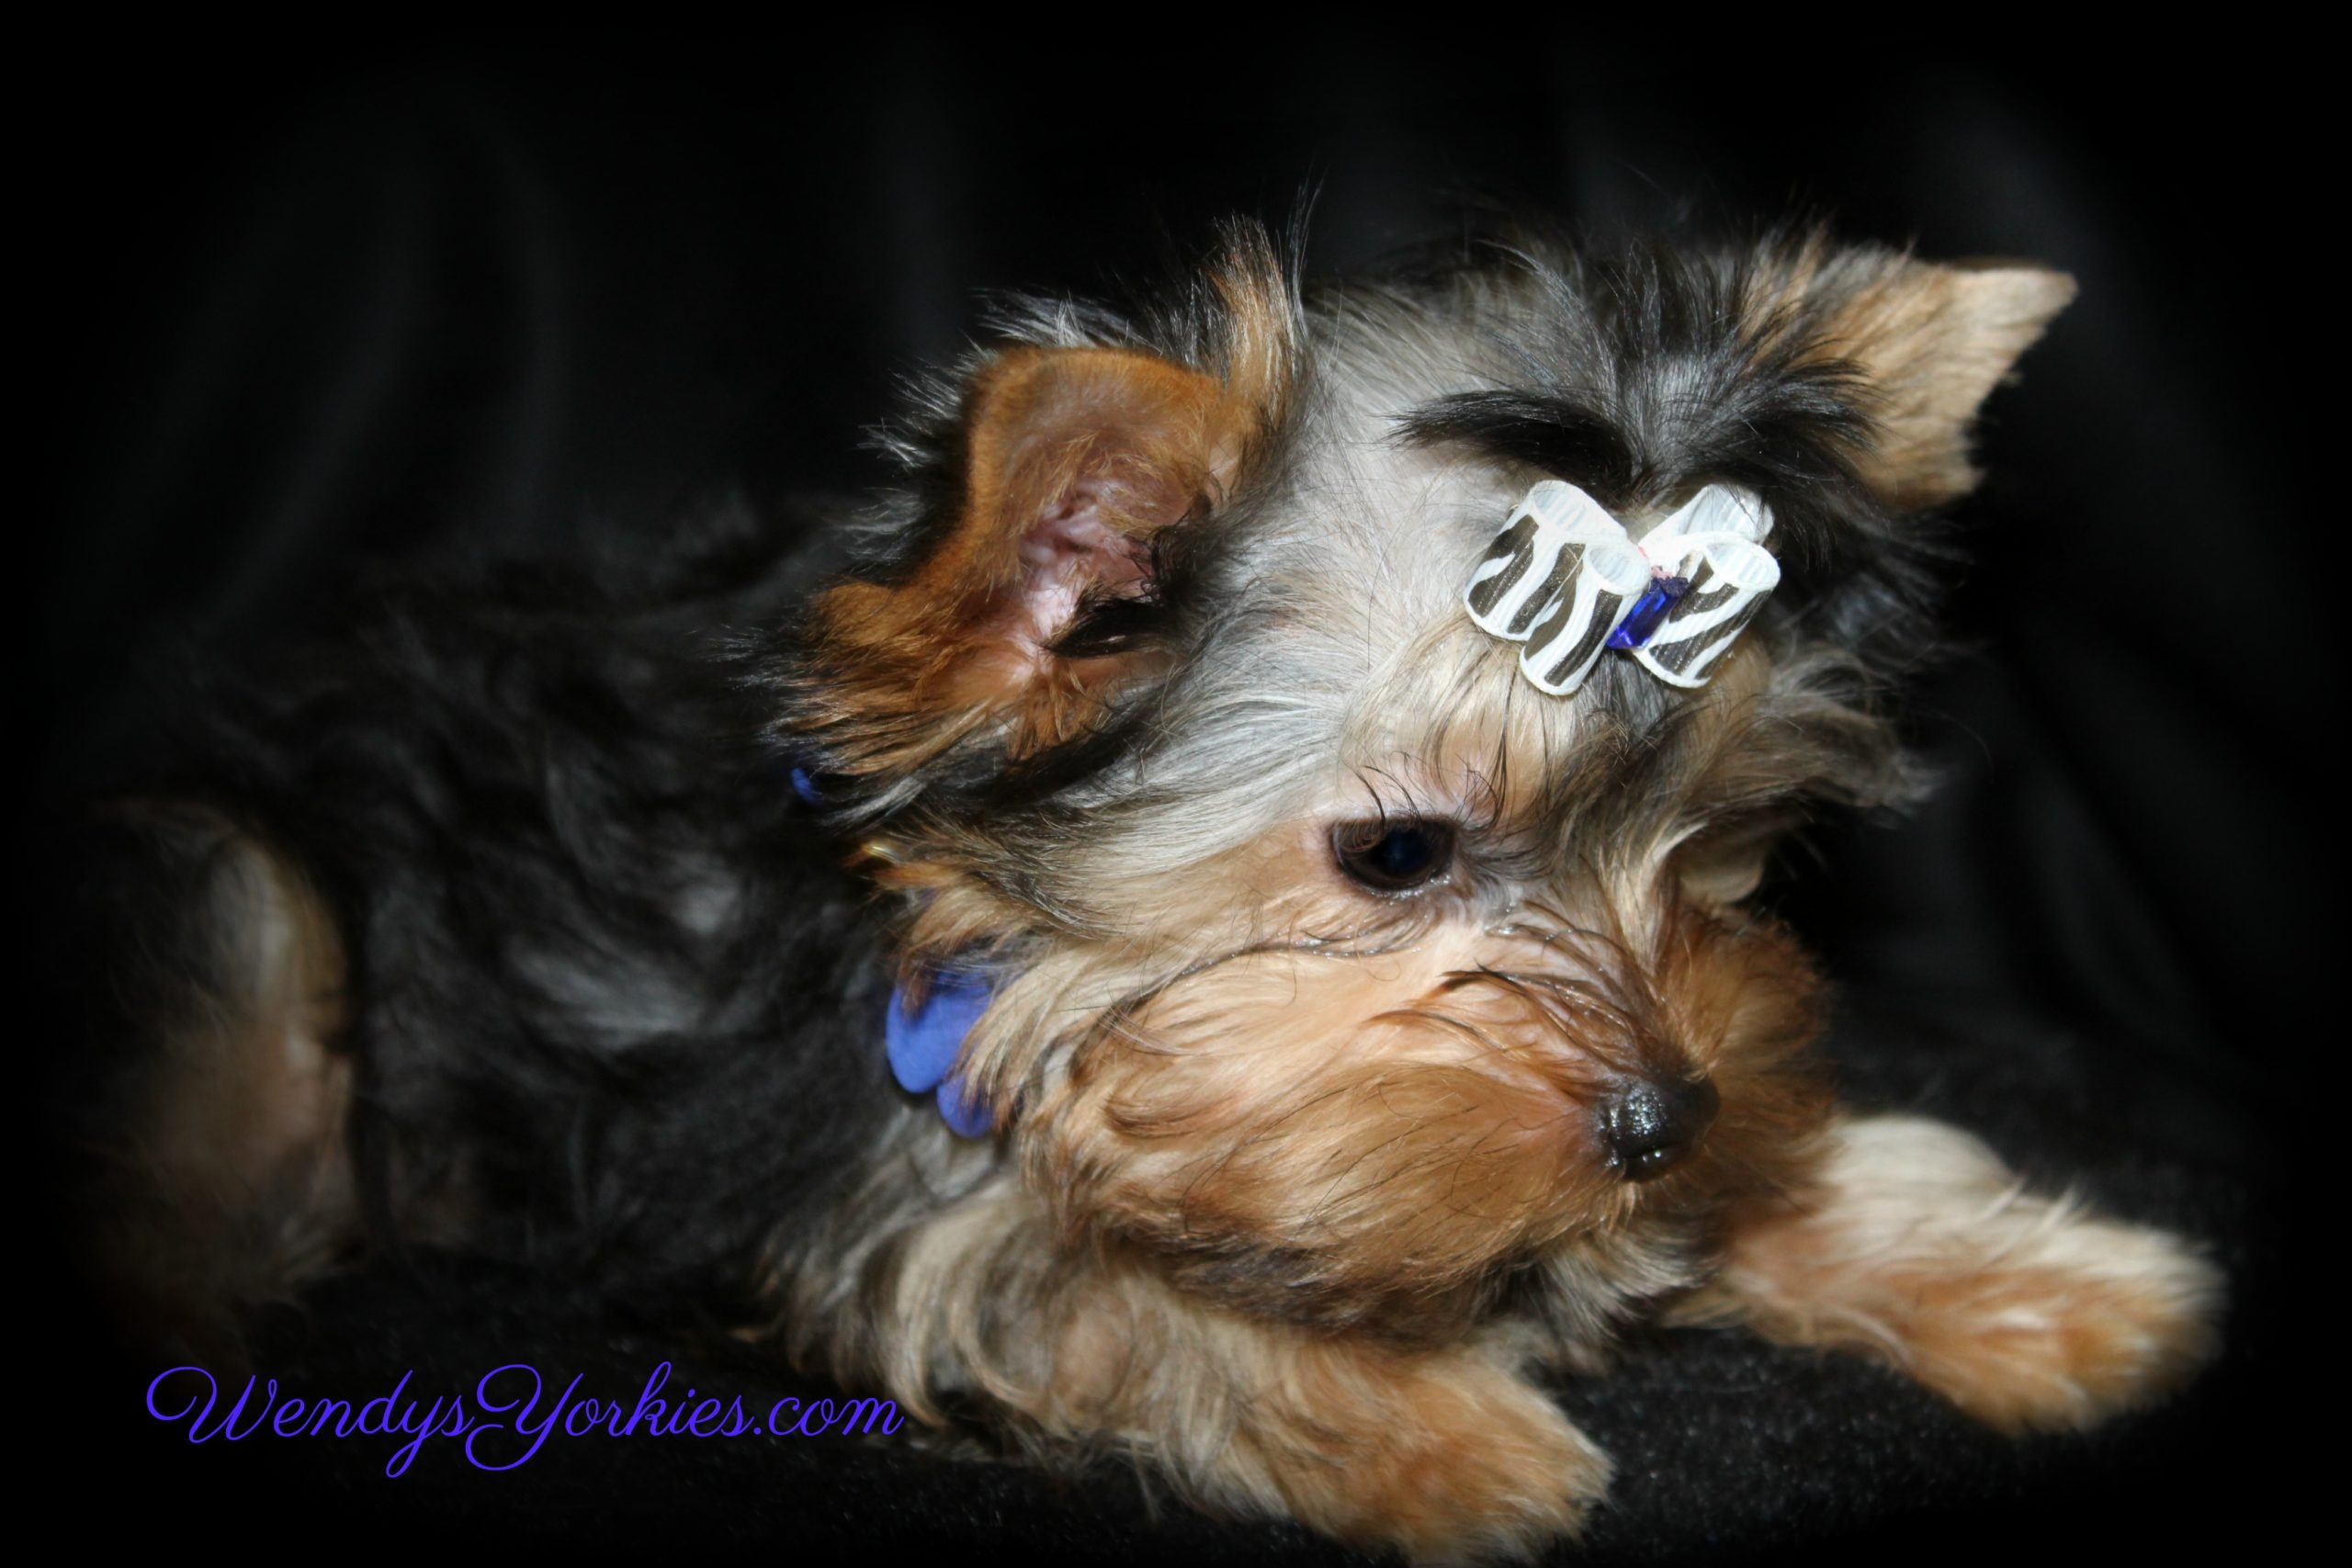 Cute Male Yorkie puppy for sale in Texas, WendysYorkies.com, Ritz